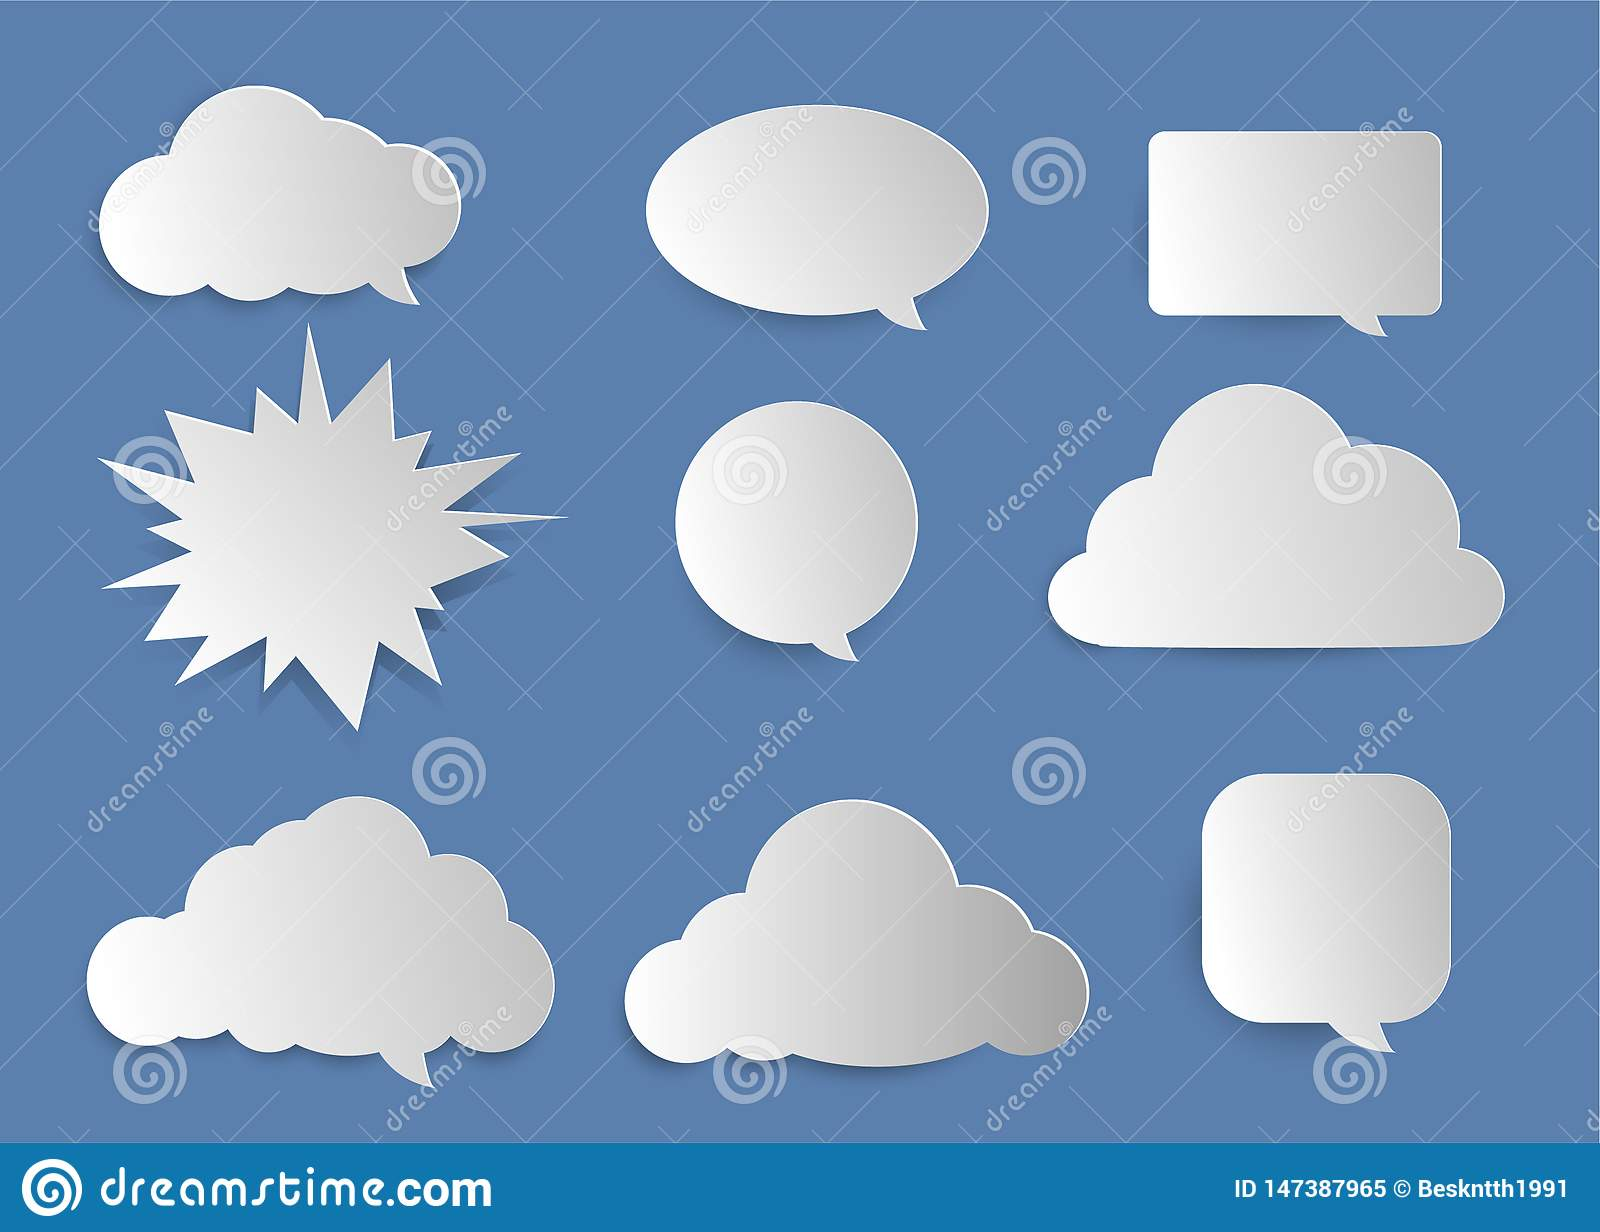 Clouds, bubbles for entering text.